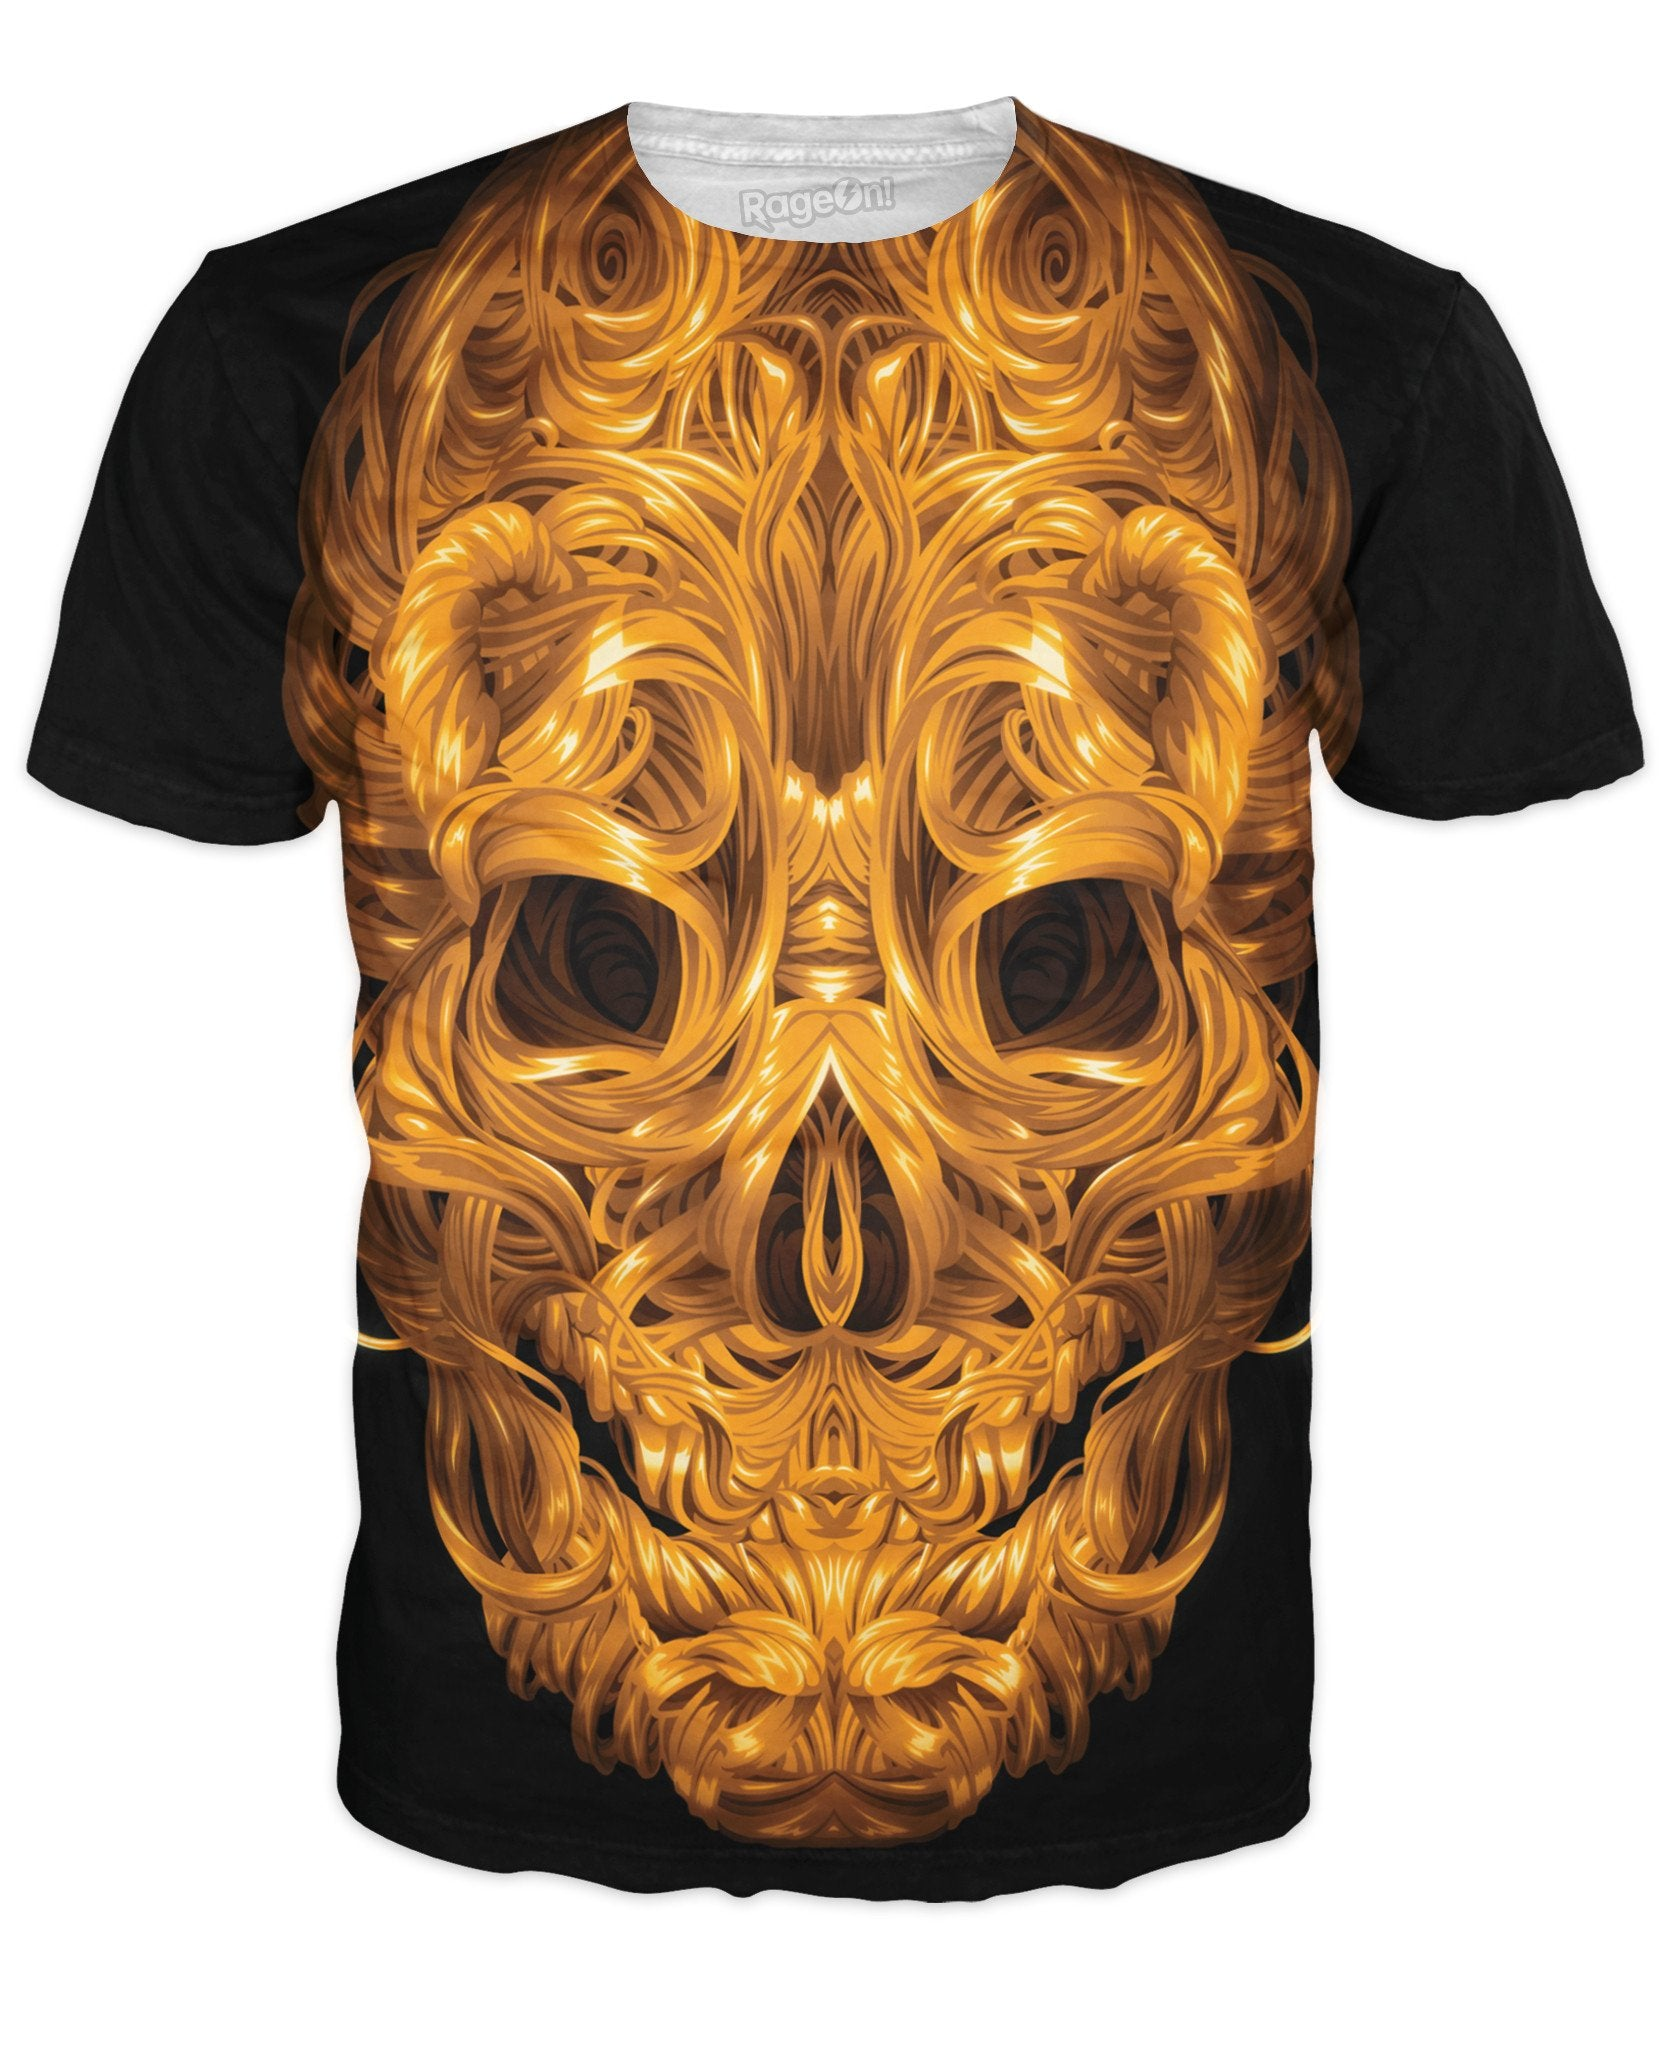 Aurum Clavariam Golden Skull T-Shirt - TShirtsRUS.co